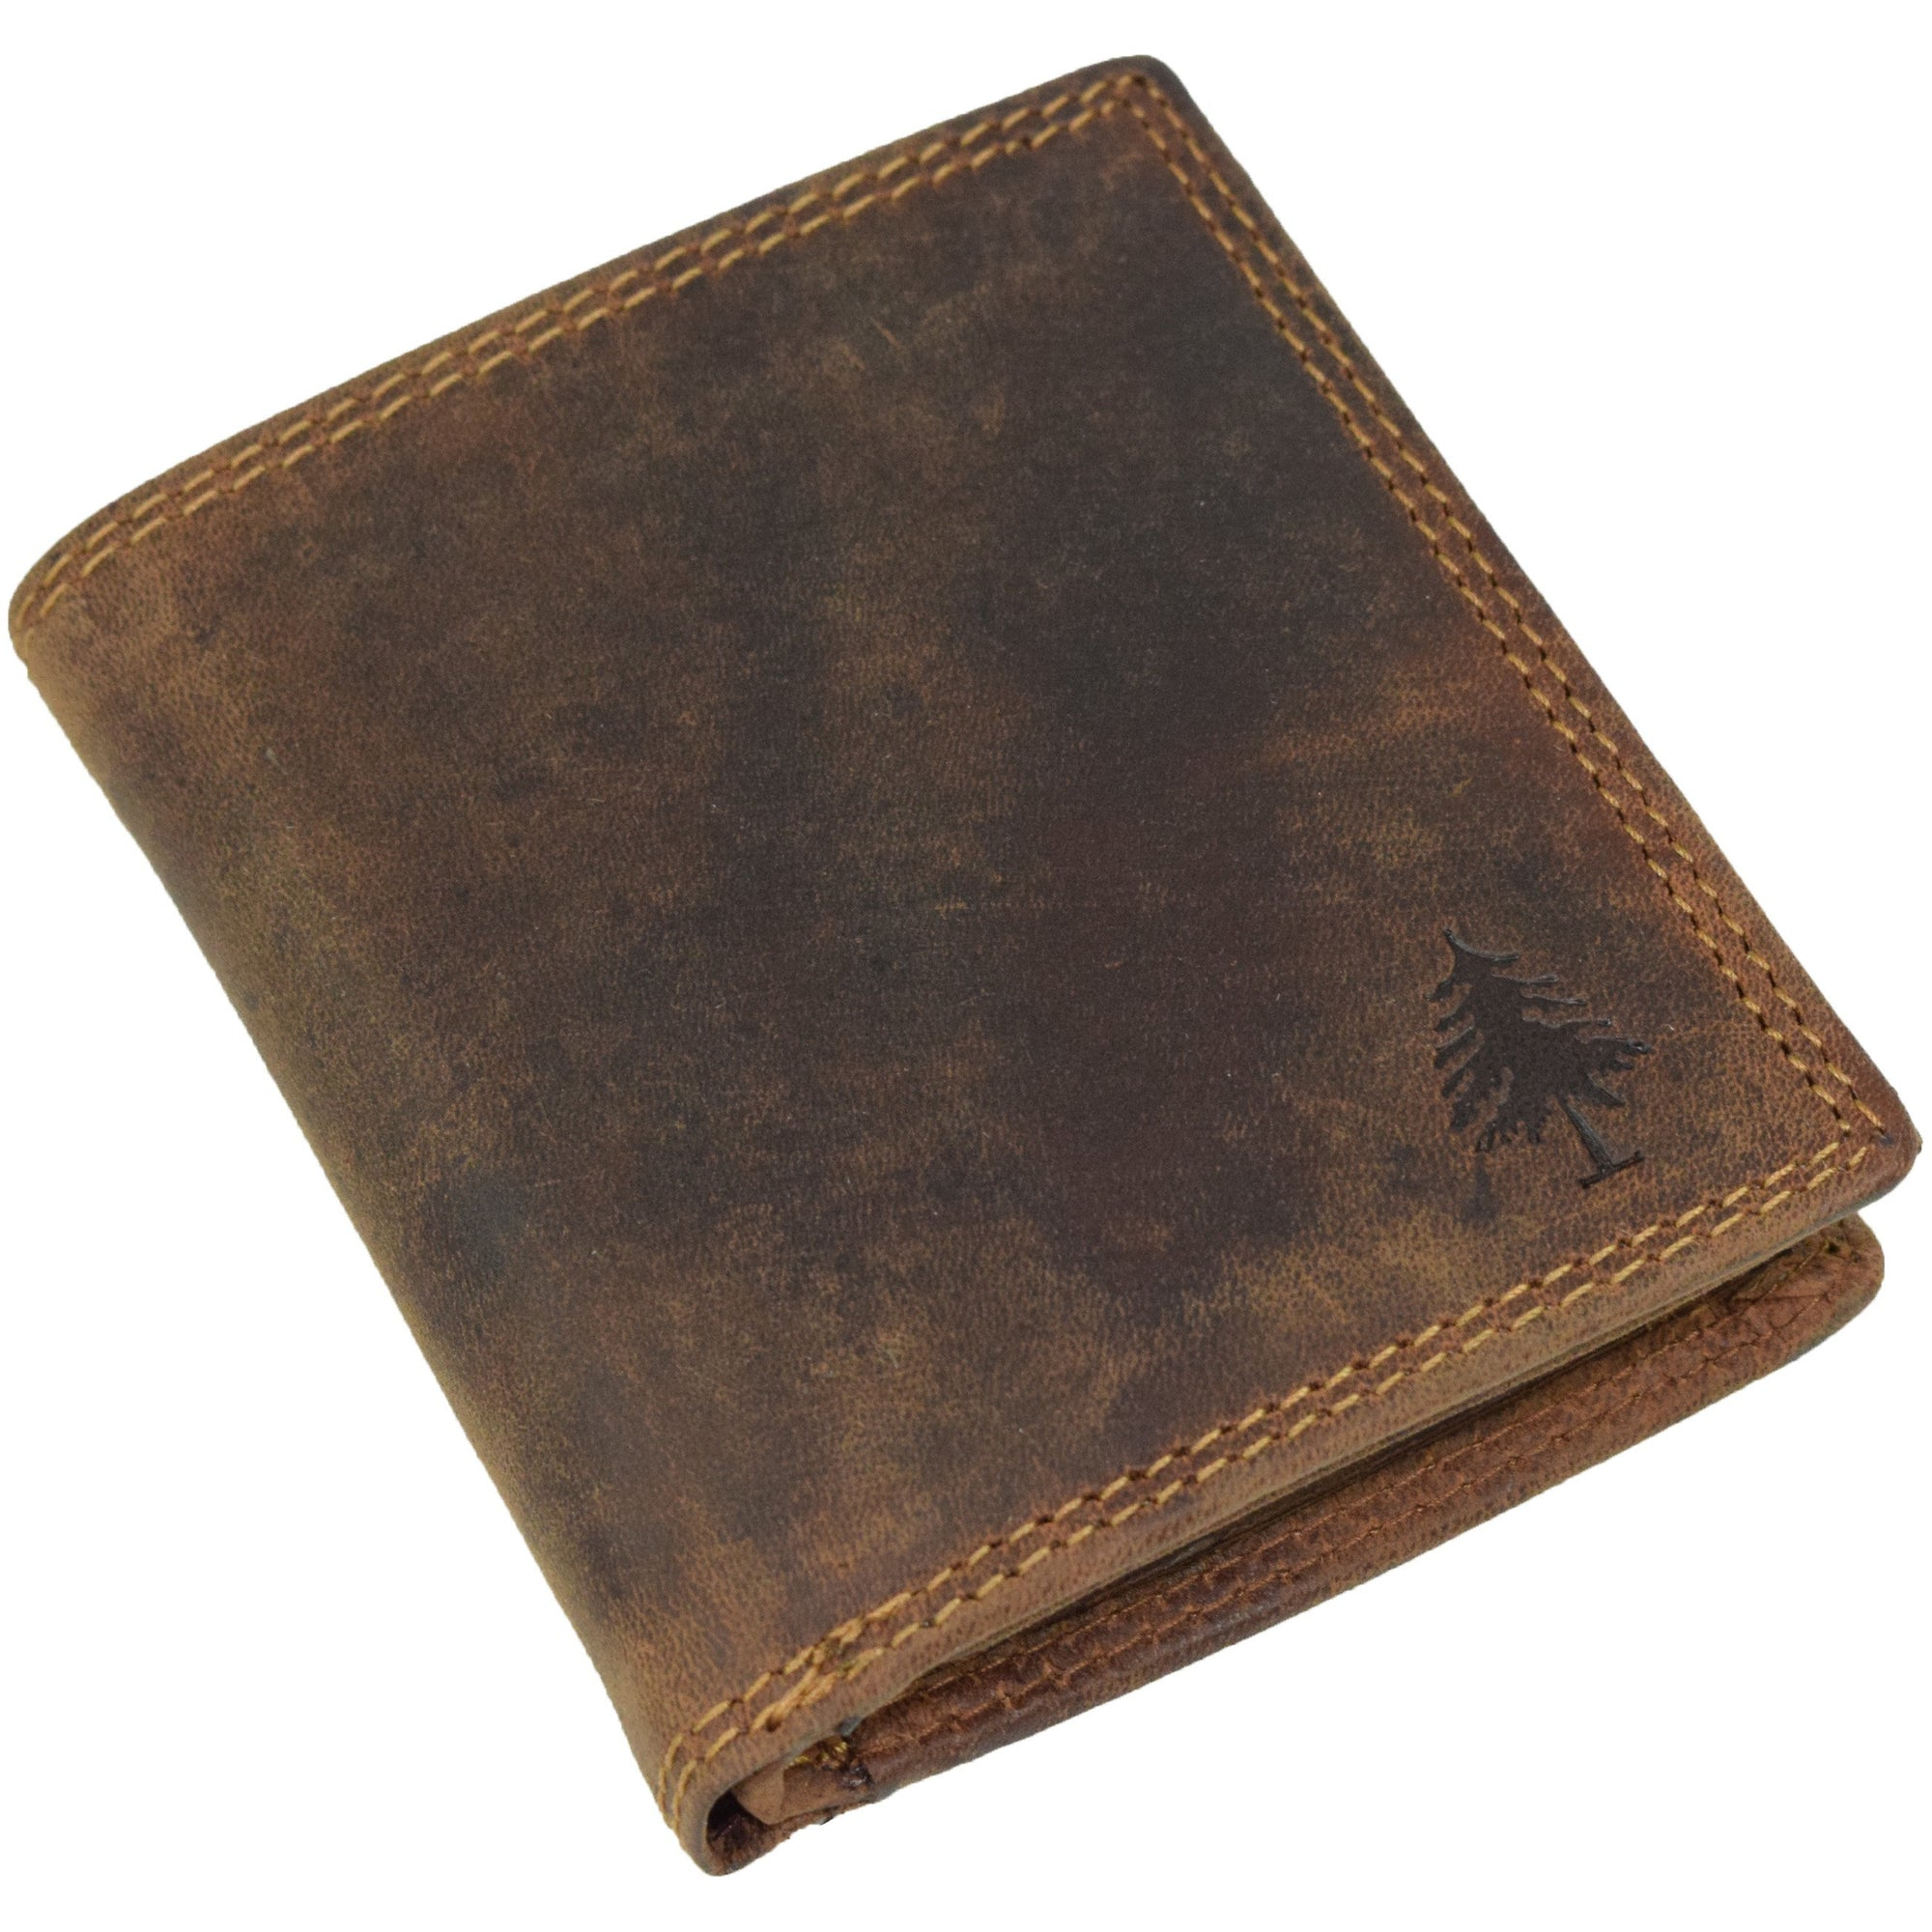 Leather Wallet Tyler - Sandal - Greenwood Australia - Handcrafted Premium Leather Goods